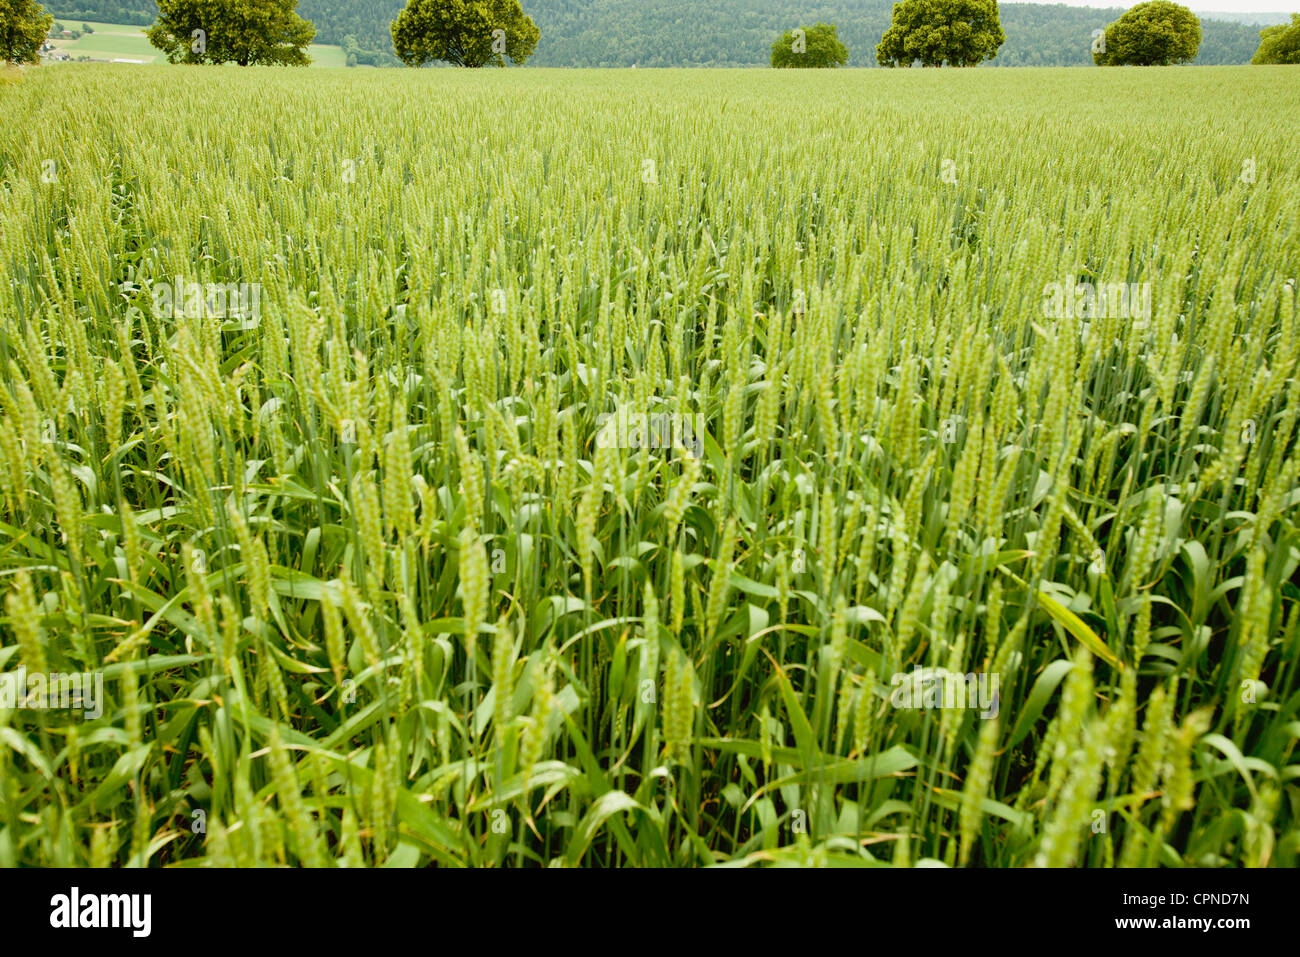 Wheat field - Stock Image